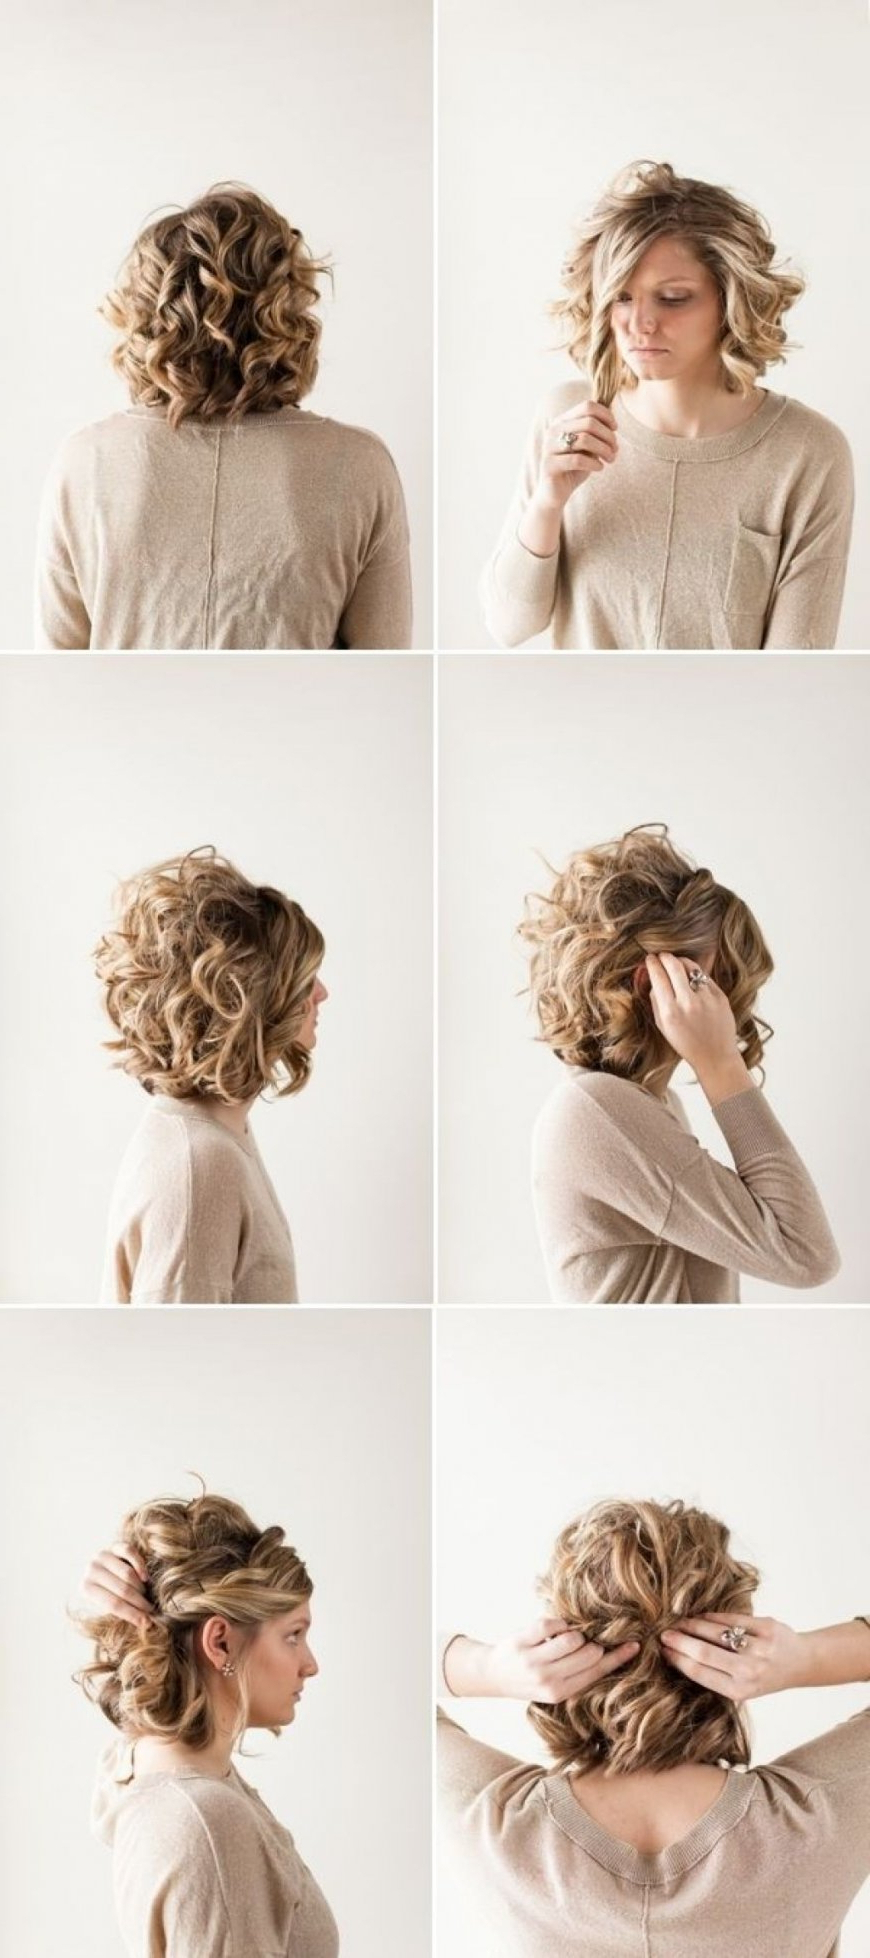 Cute Wedding Hairstyles For Short Hair » Best Hairstyles & Haircuts With Regard To Brides Hairstyles For Short Hair (View 11 of 25)